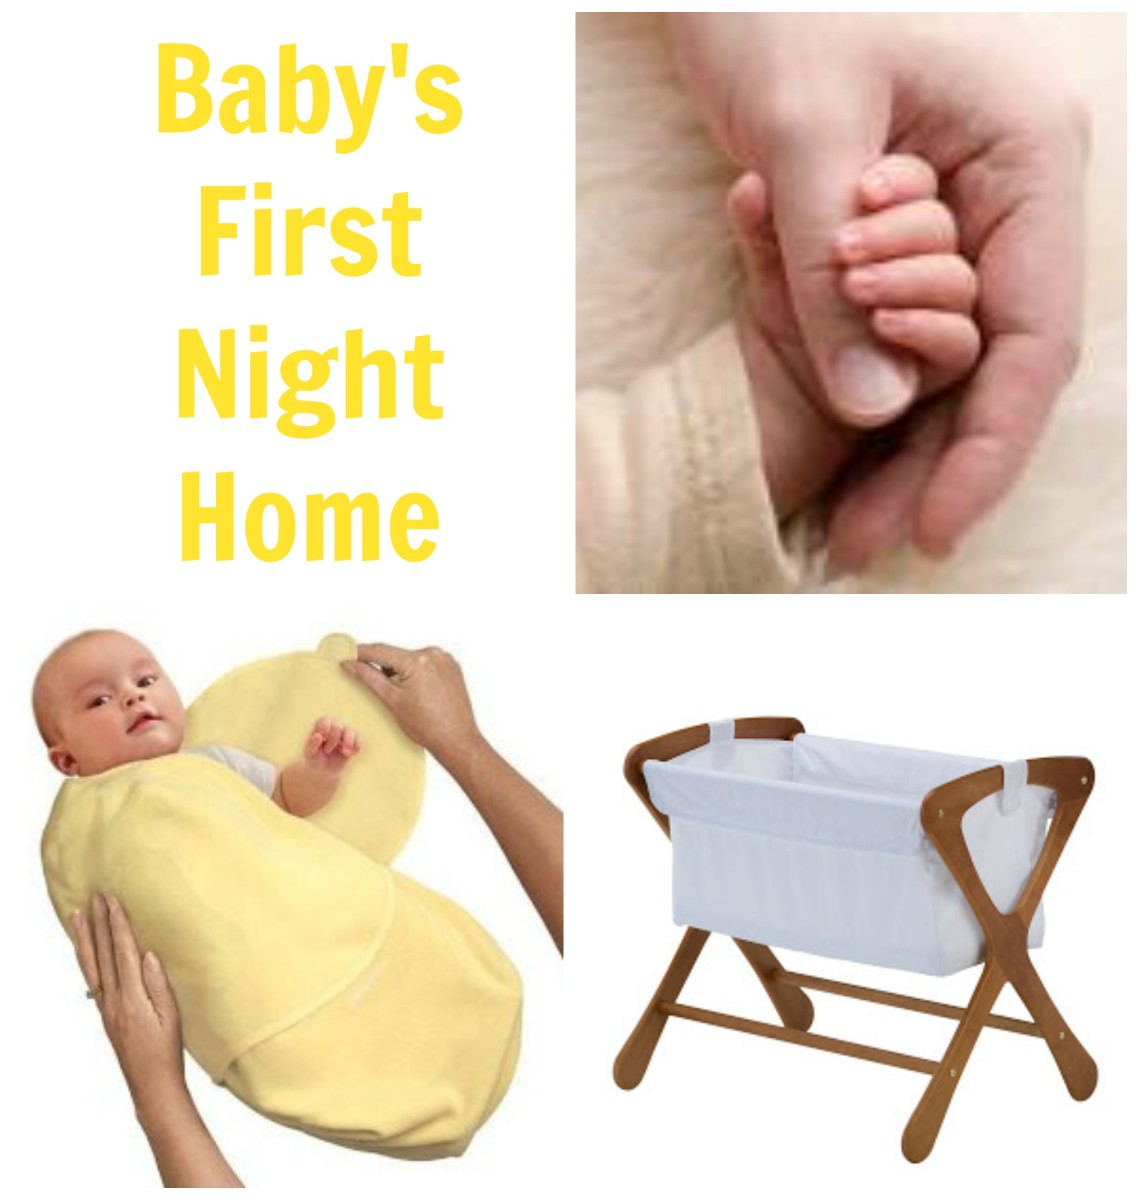 baby's first night home